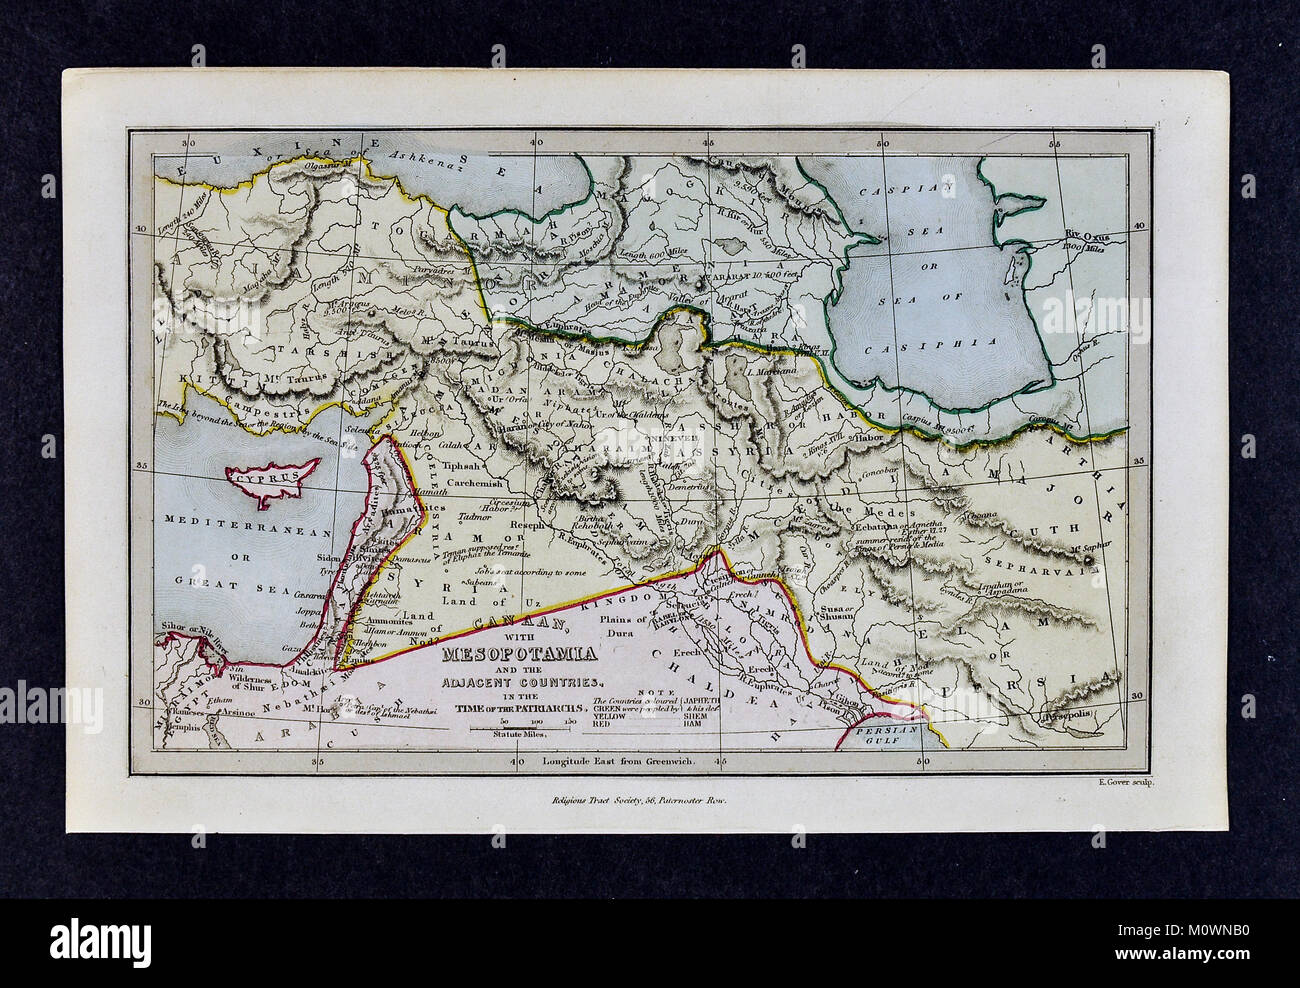 1799 Bible Tract Society Map - Canaan with Mesopotamia and Middle East in the Time of the Patriarchs Old Testament - Stock Image